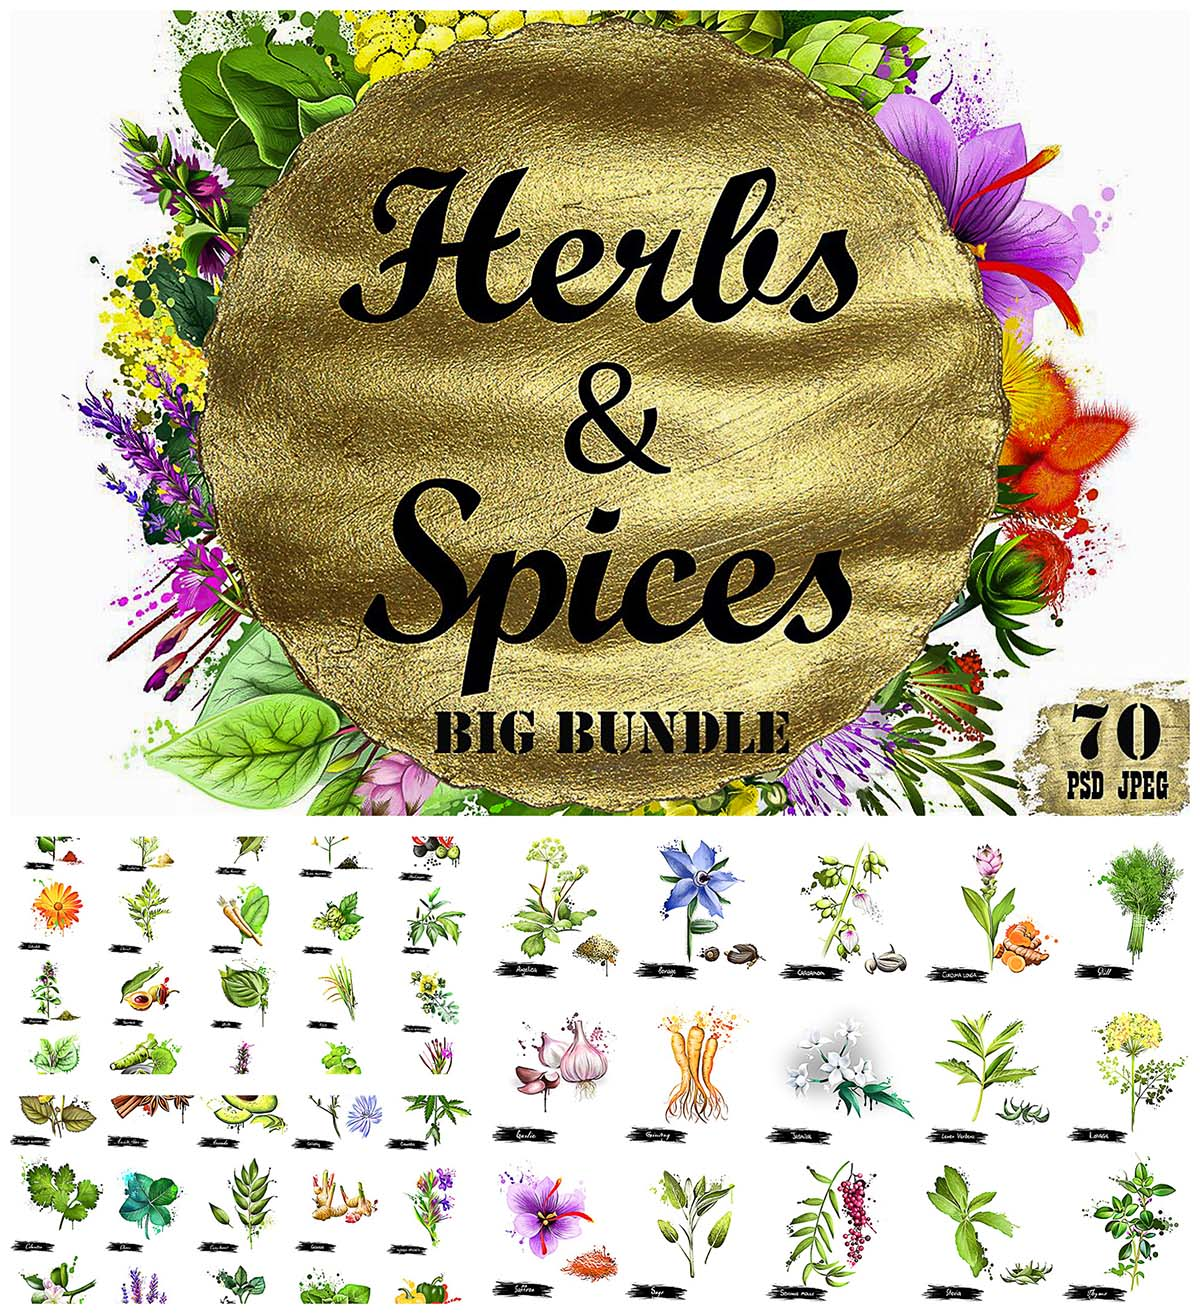 Herbs and spices bundle